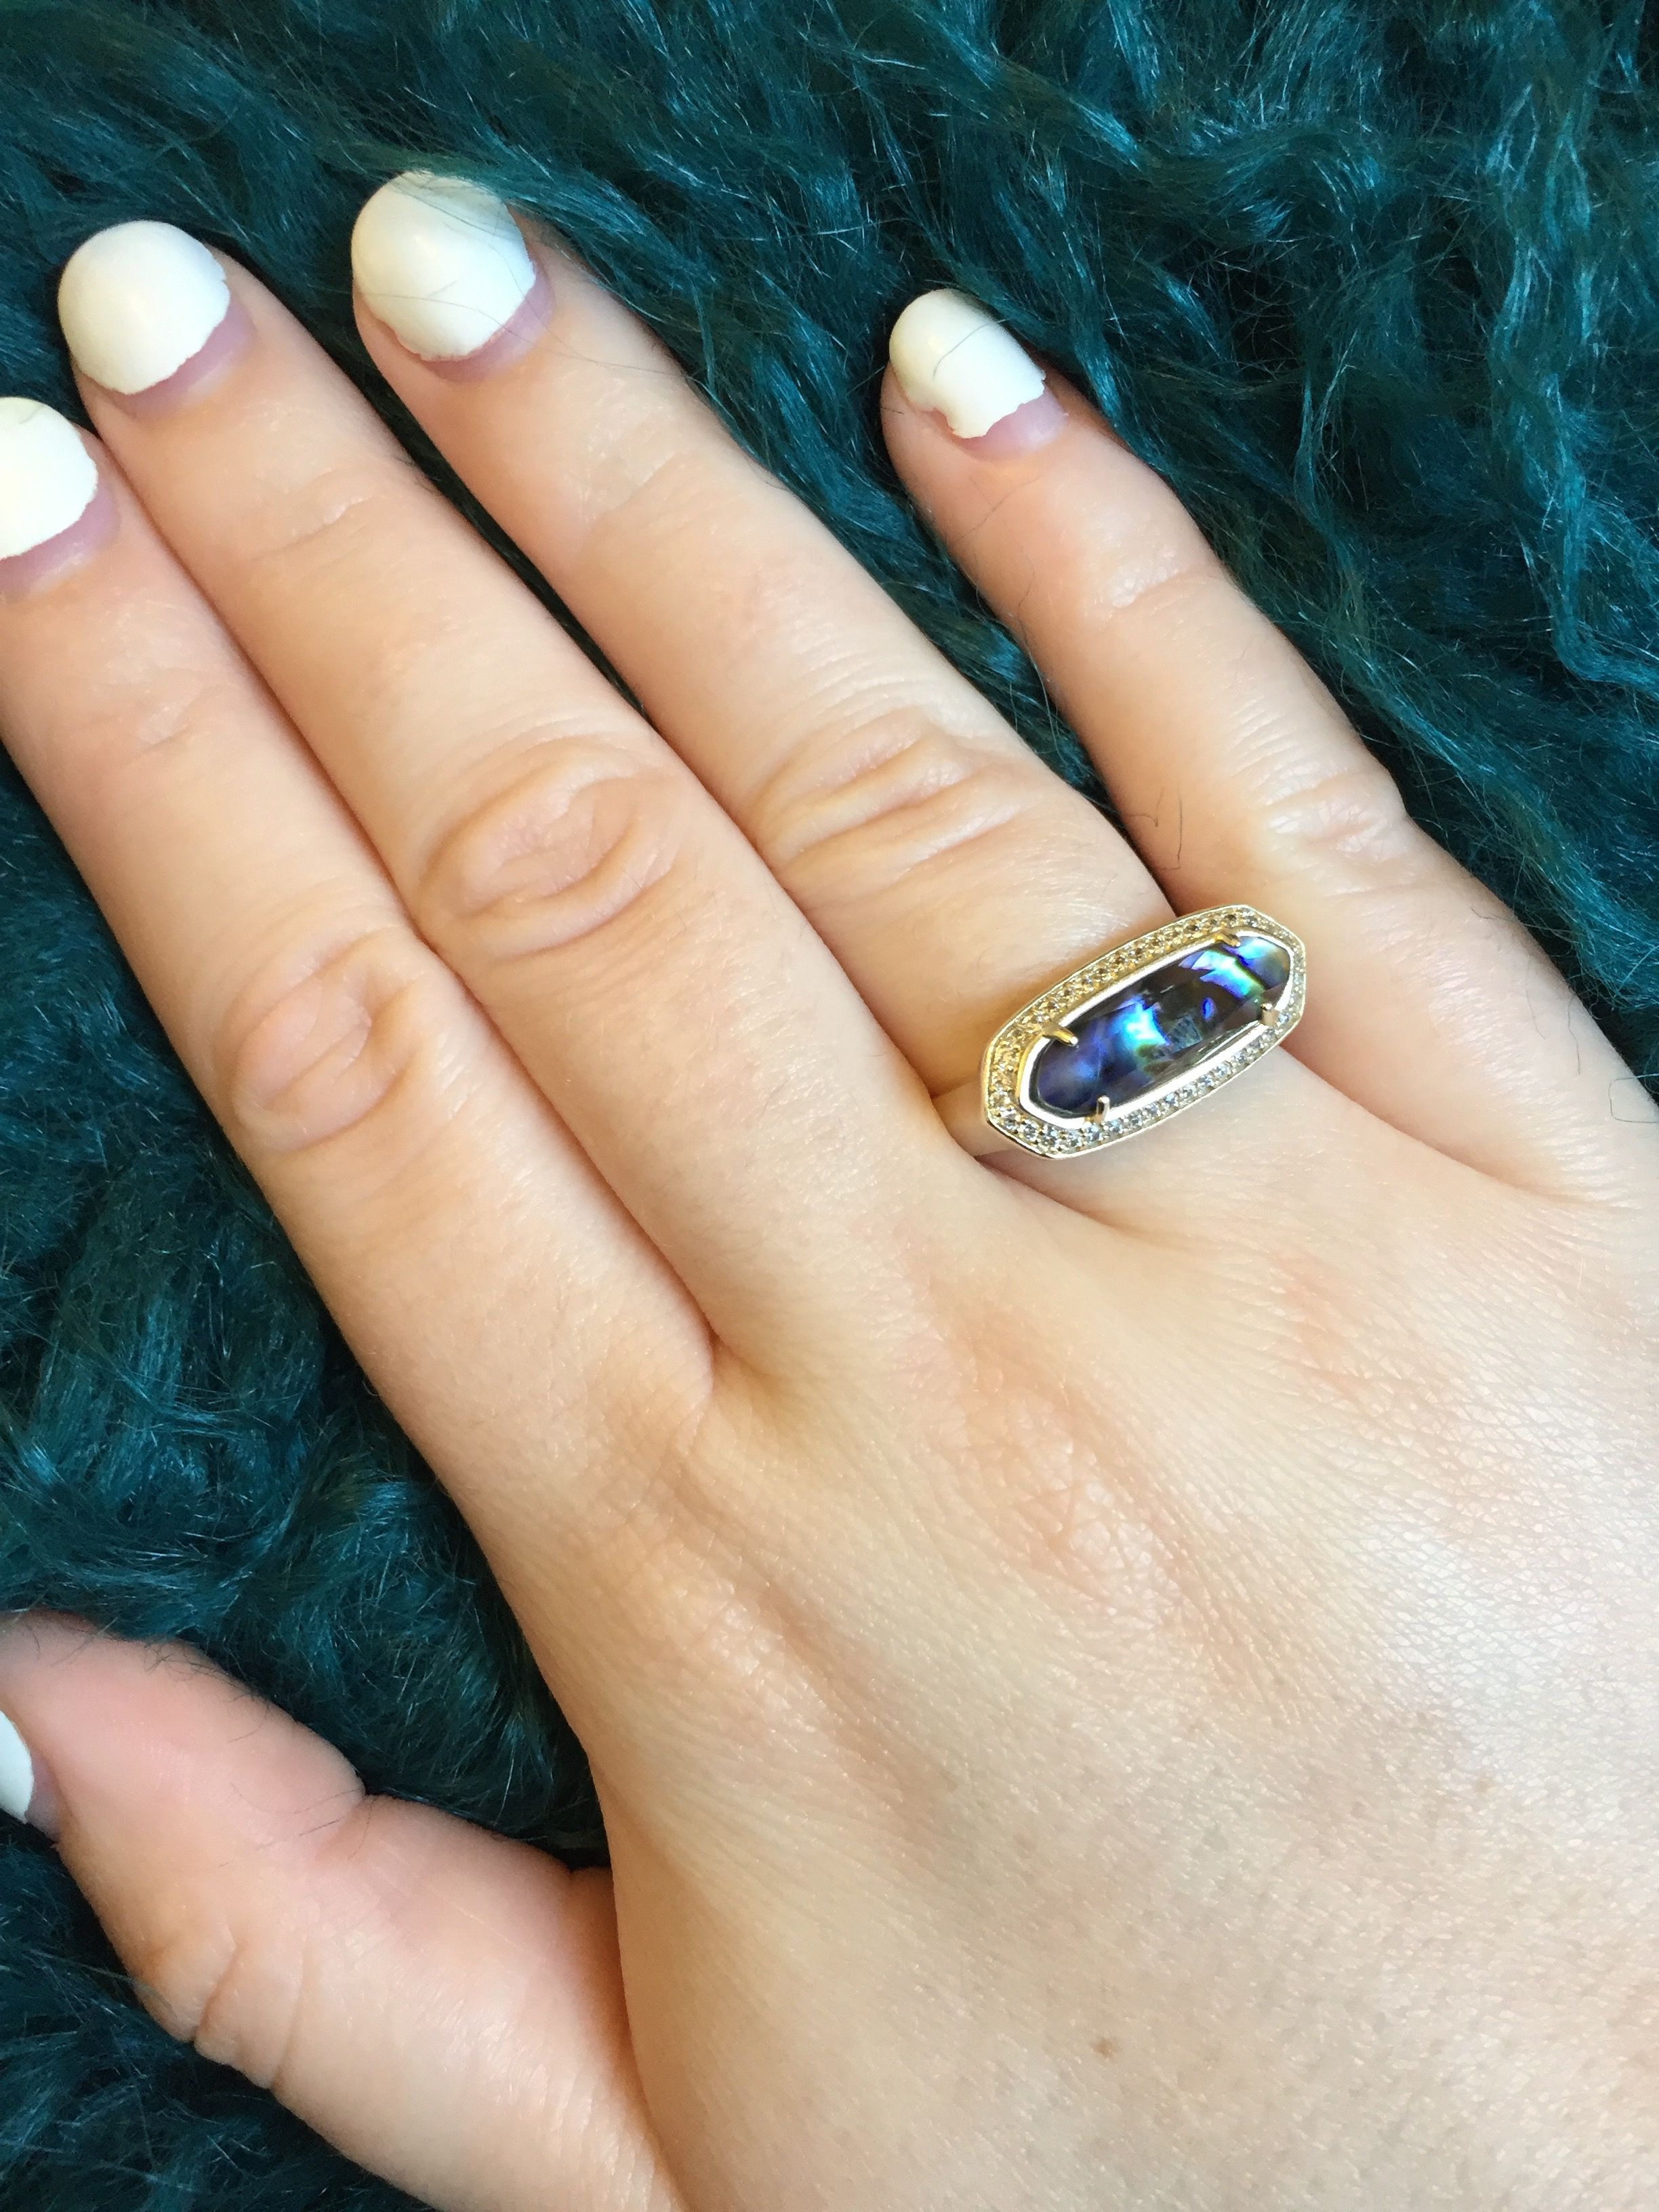 with cathedral carat setting abalone ctw any ring can from a engagement by shape stone this design be diamonds rings accented aquila round pav popular is cobalt the